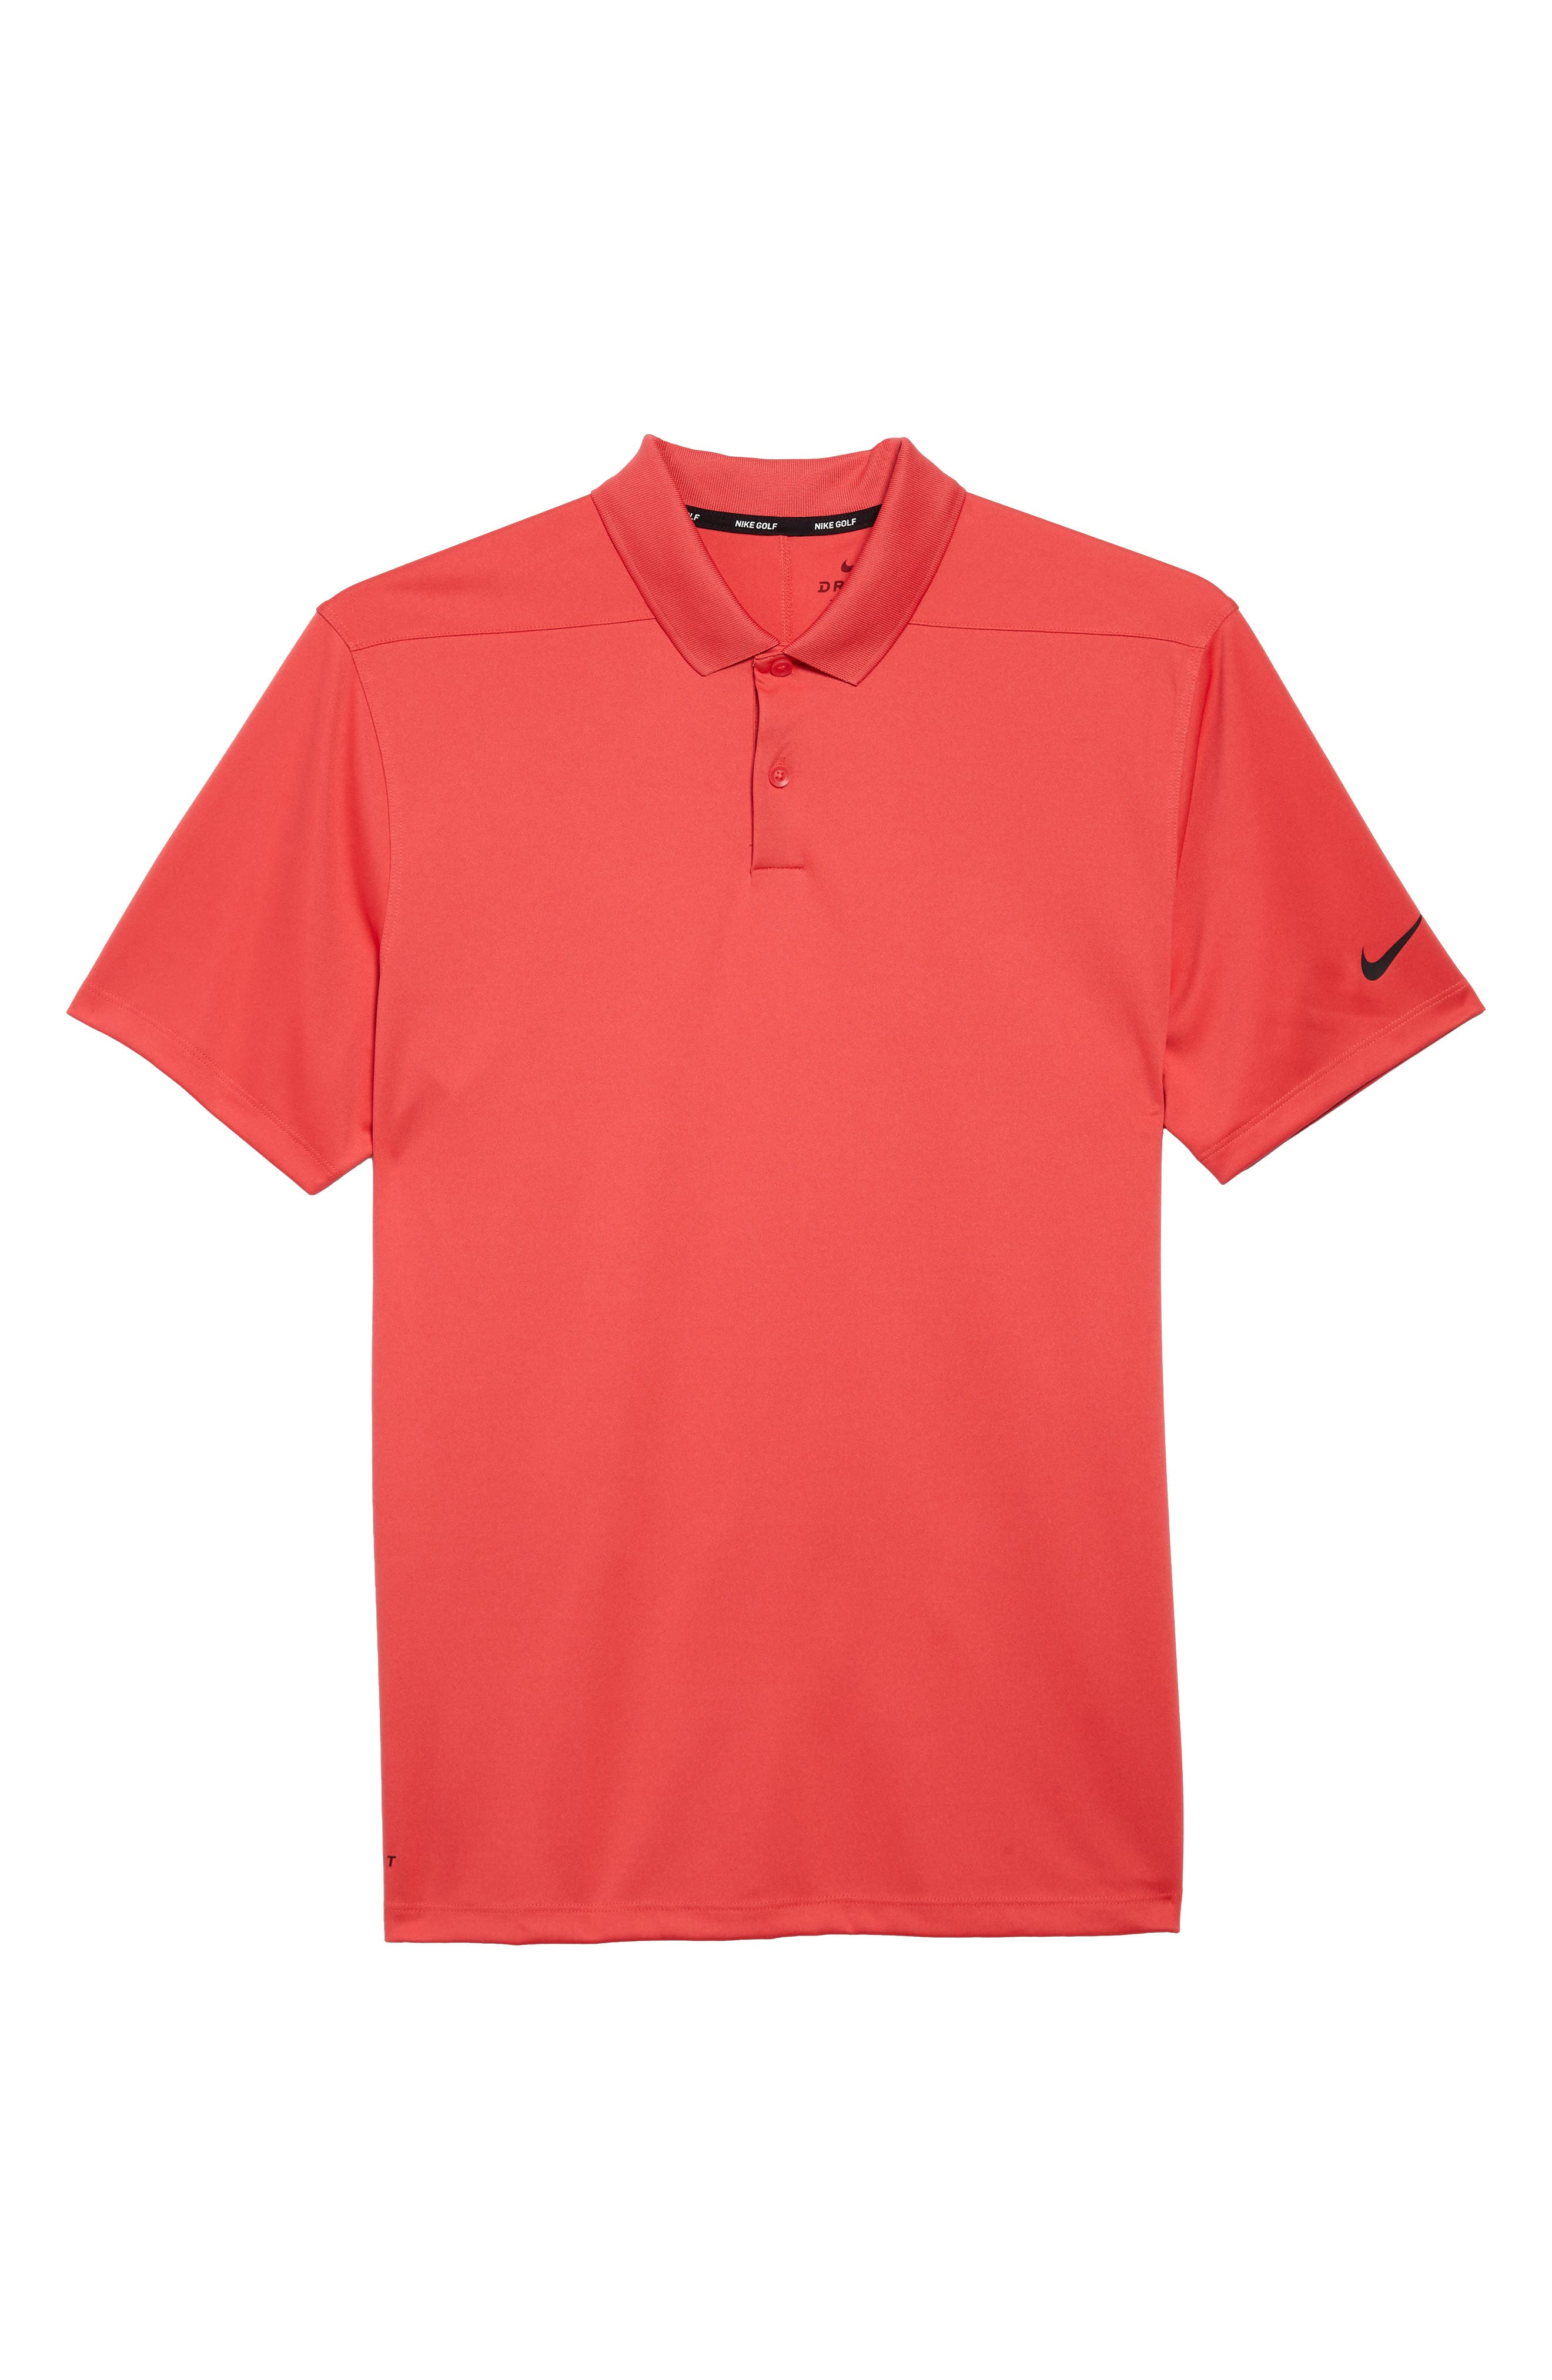 Dry Victory Golf Polo,                             Alternate thumbnail 6, color,                             Tropical Pink/ Black